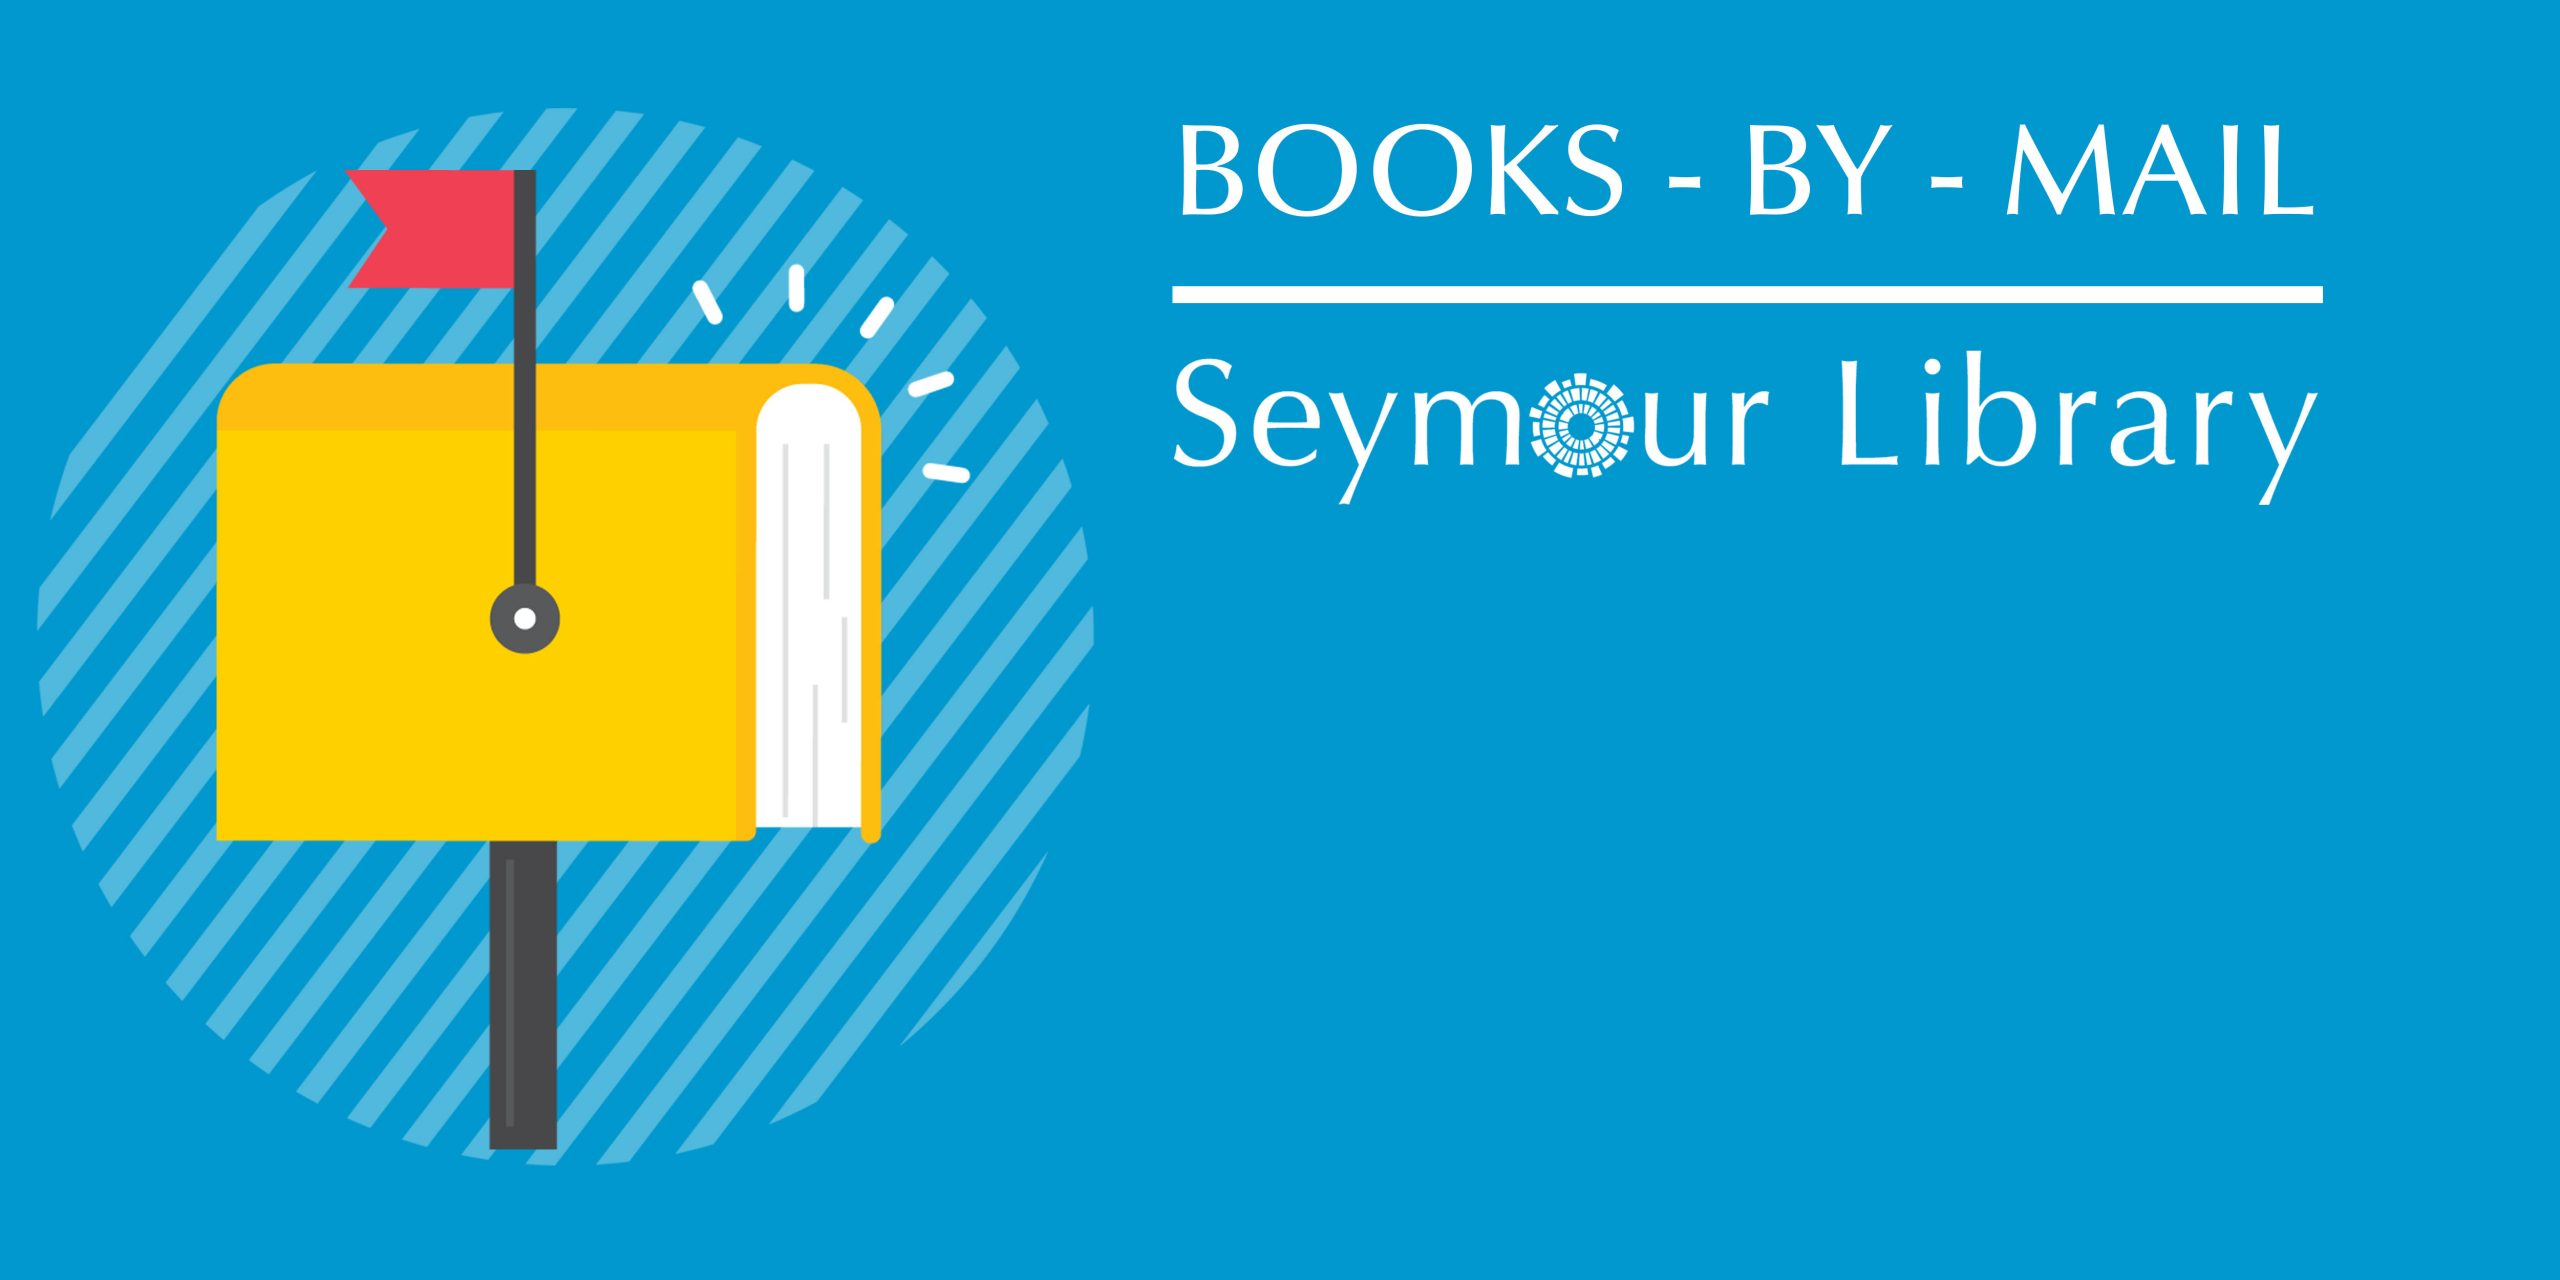 Books by Mail from Seymour Library